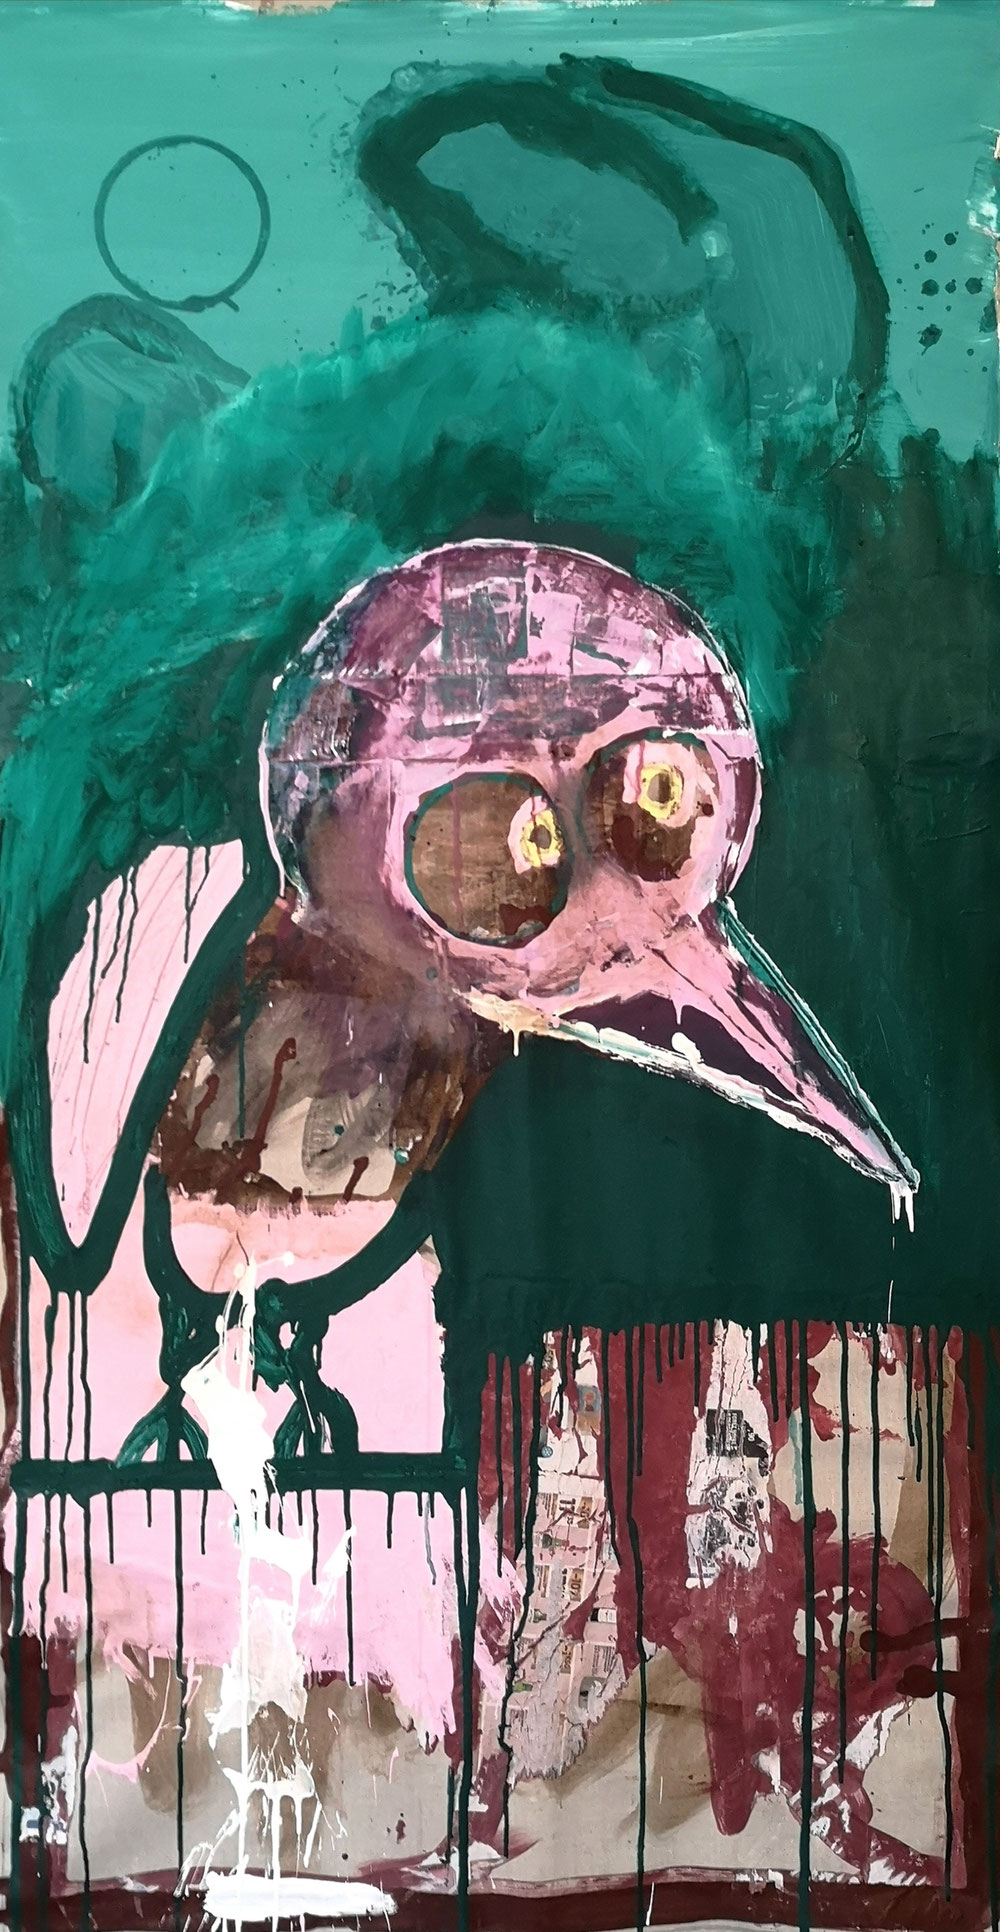 'Down the hill with a crazy bird' - Acrylic and paper on linen canvas - 150x80cm - 2021